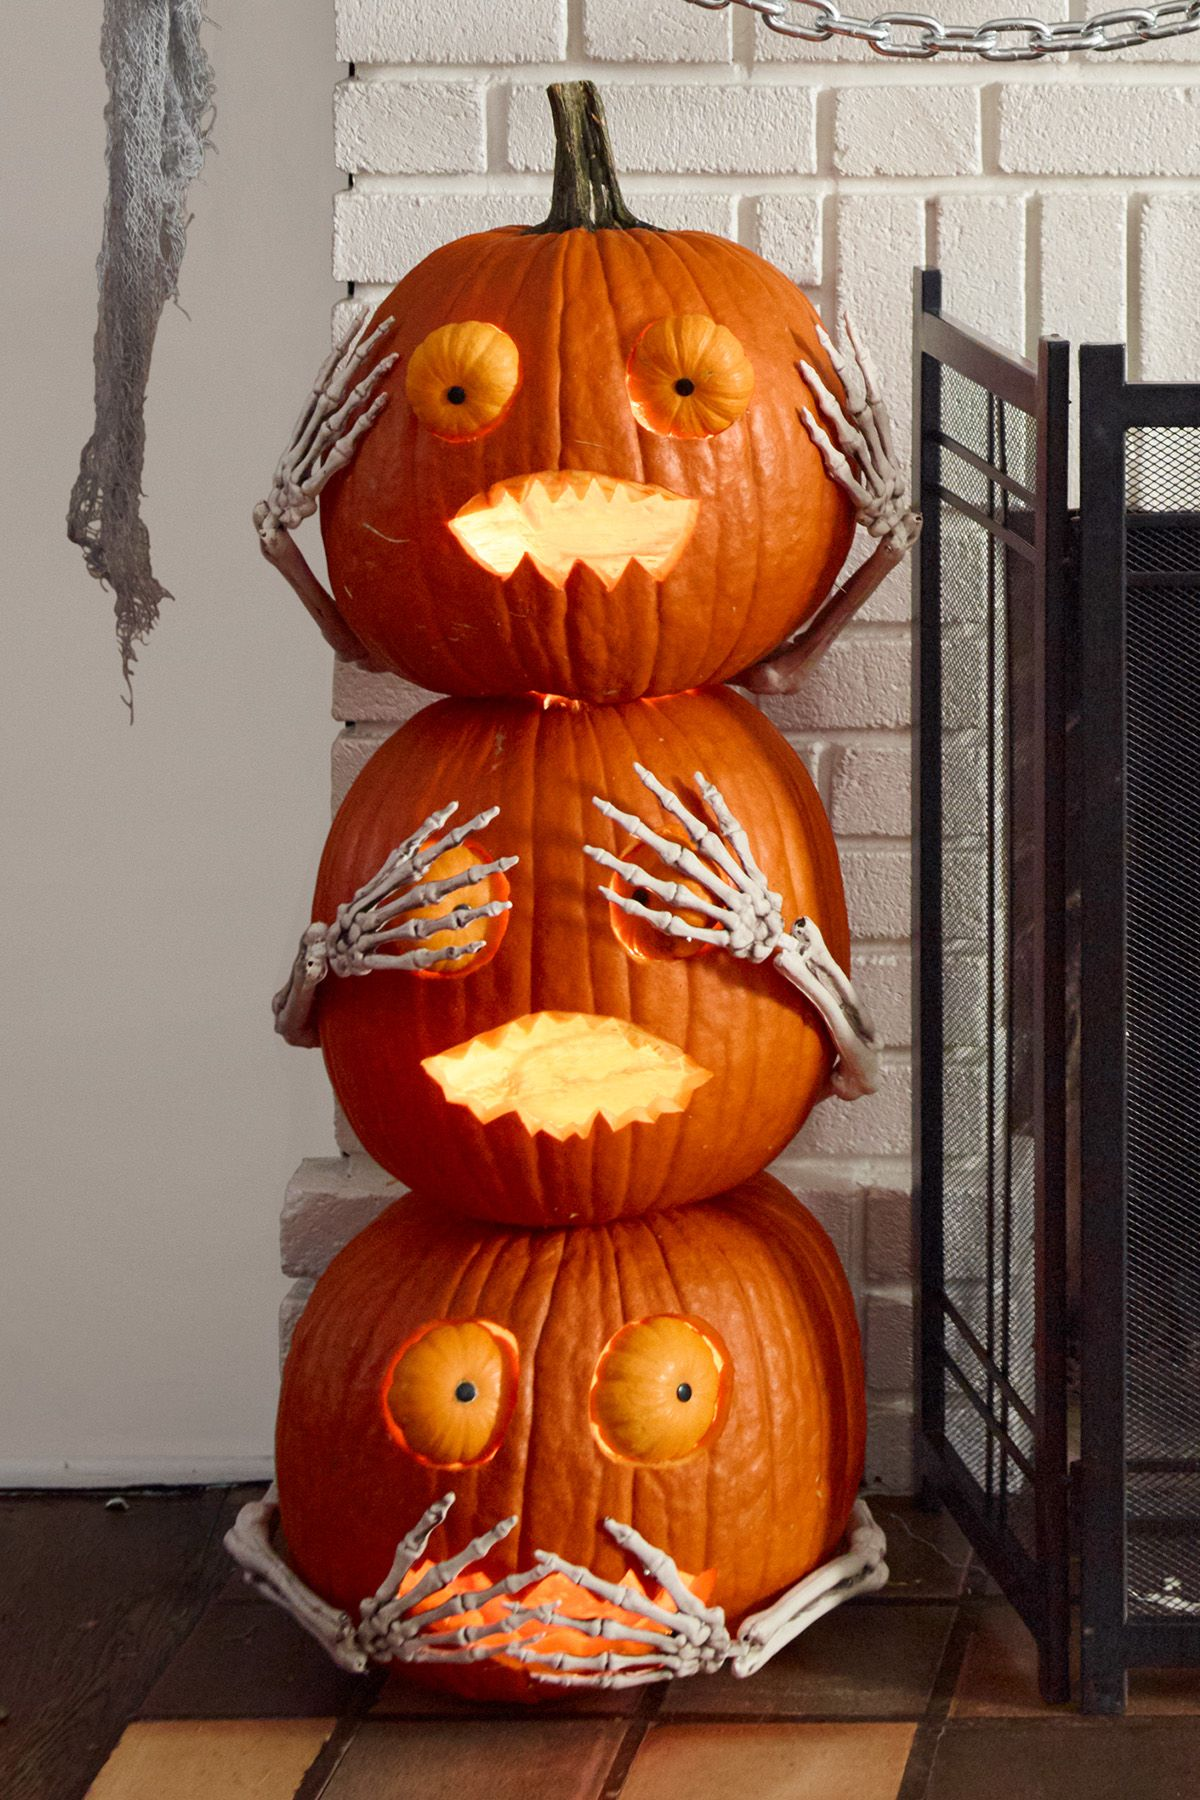 pumpkin carving ideas - creative